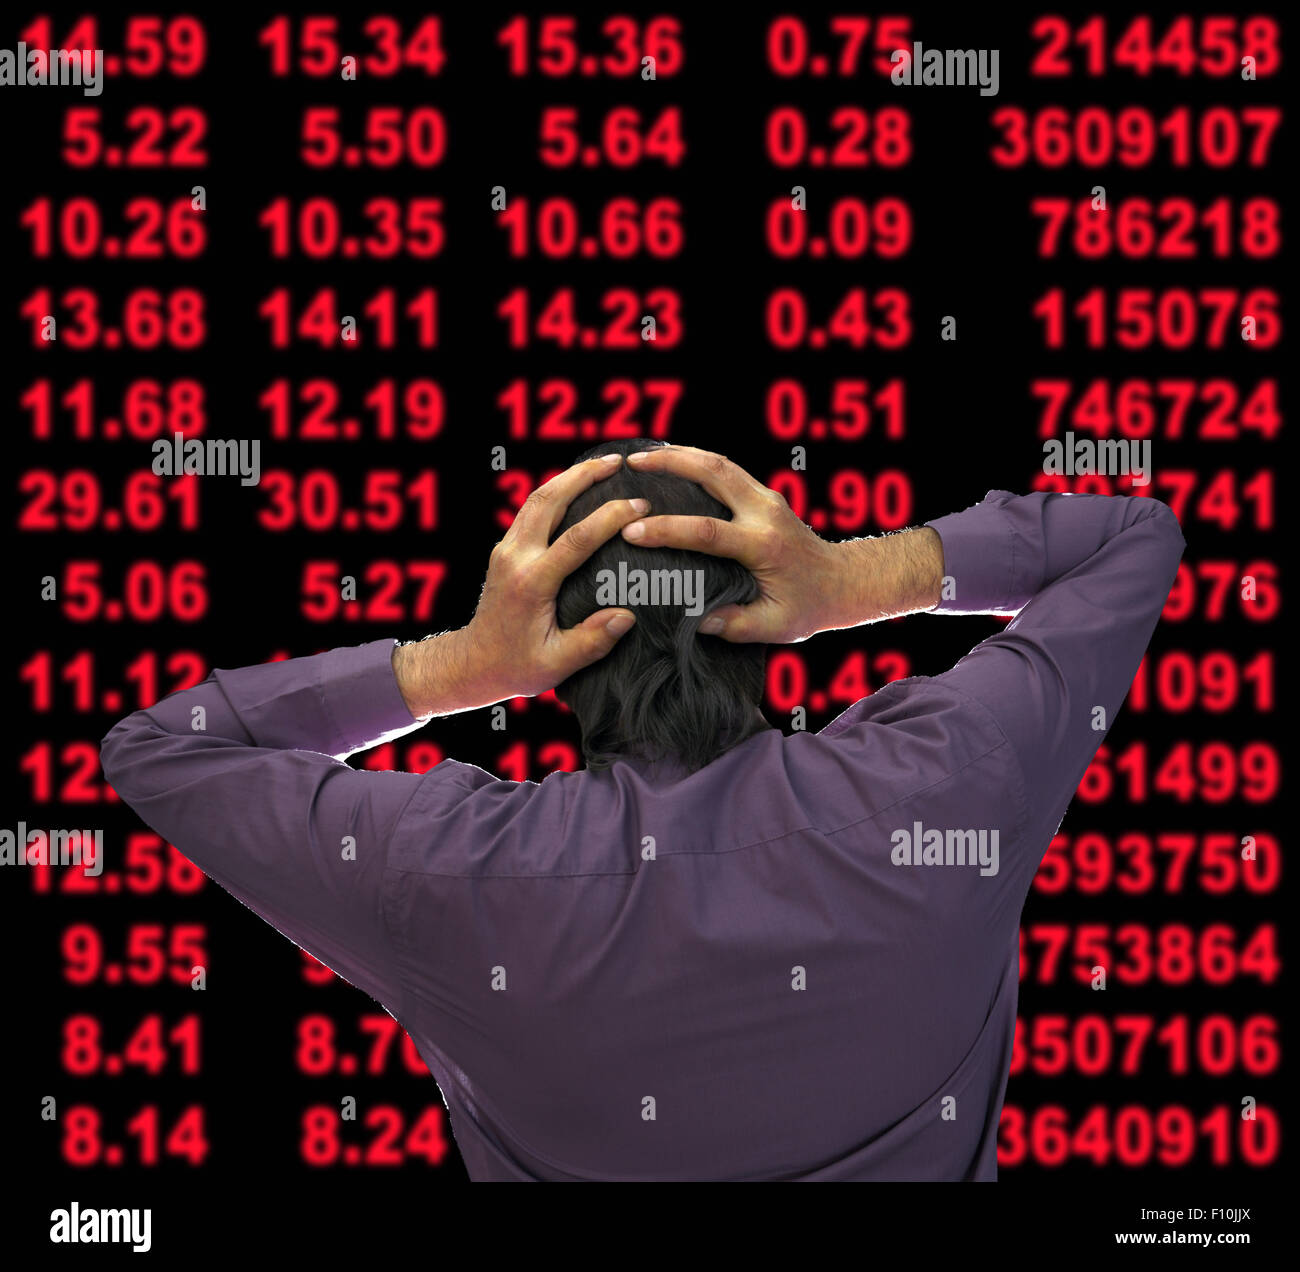 Stock market crash. - Stock Image